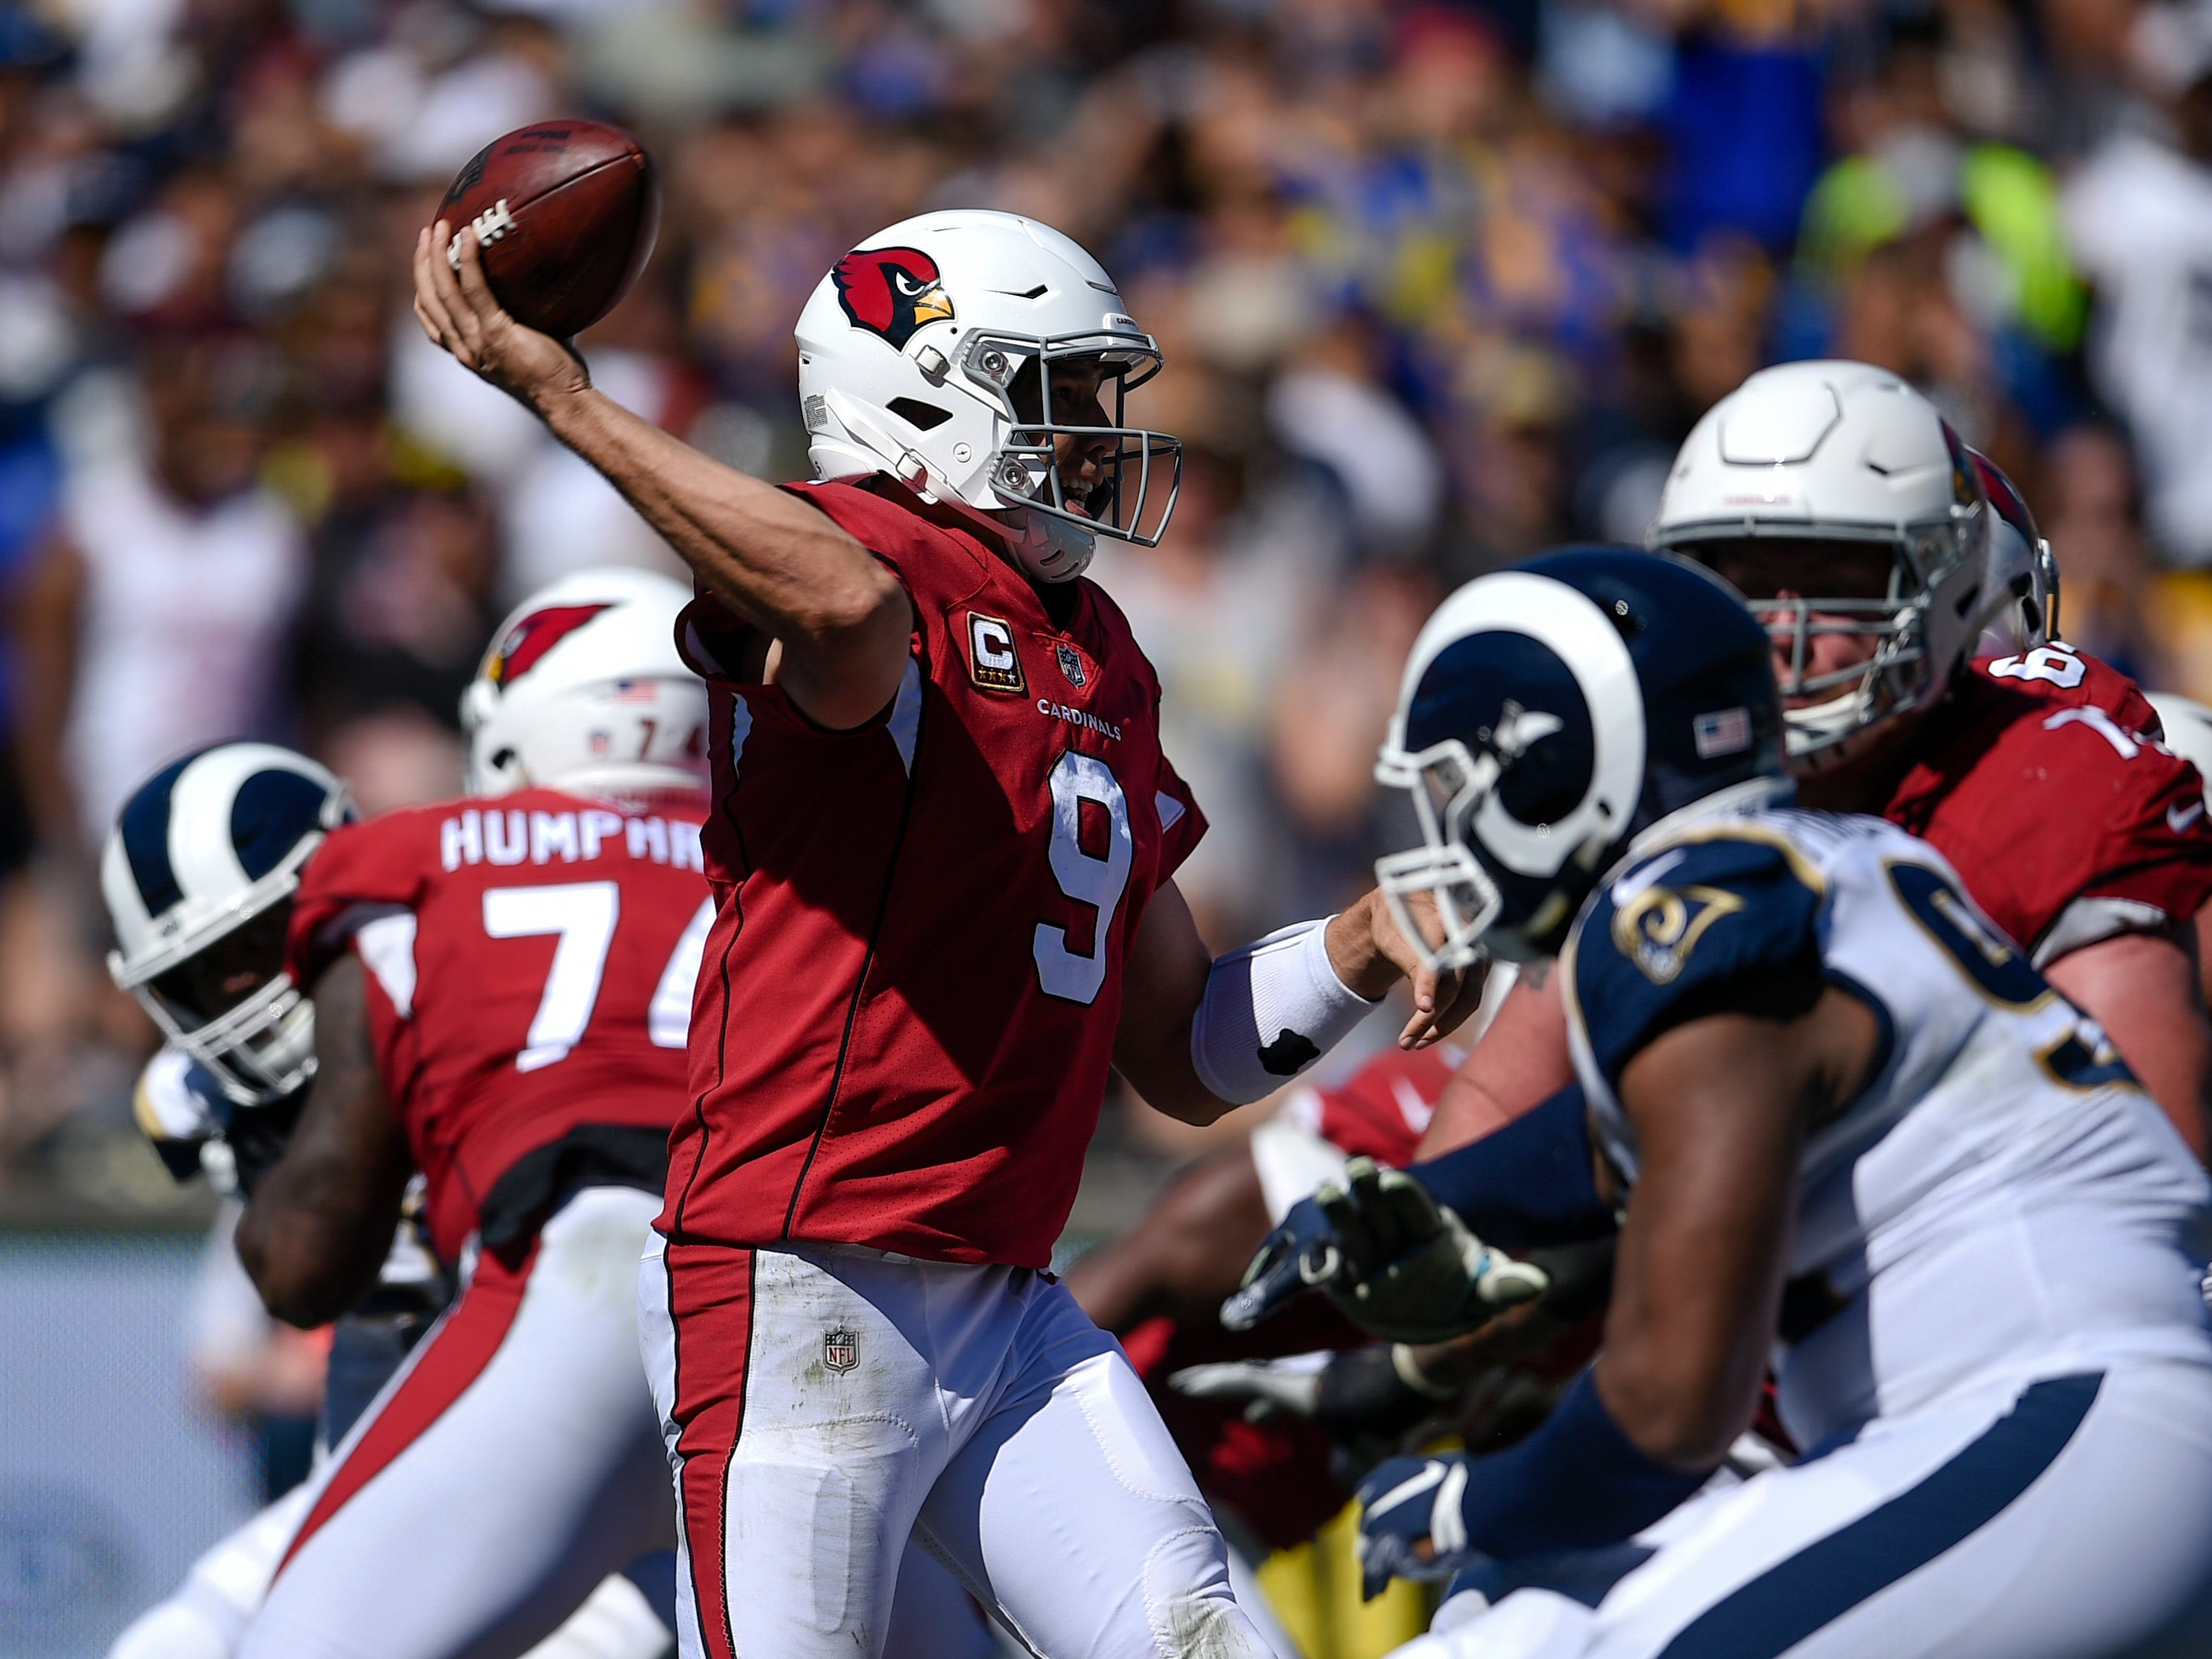 Sep 16, 2018; Los Angeles, CA, USA; Arizona Cardinals quarterback Sam Bradford (9) attempts a pass during the second half against the Los Angeles Rams at Los Angeles Memorial Coliseum. Mandatory Credit: Kelvin Kuo-USA TODAY Sports